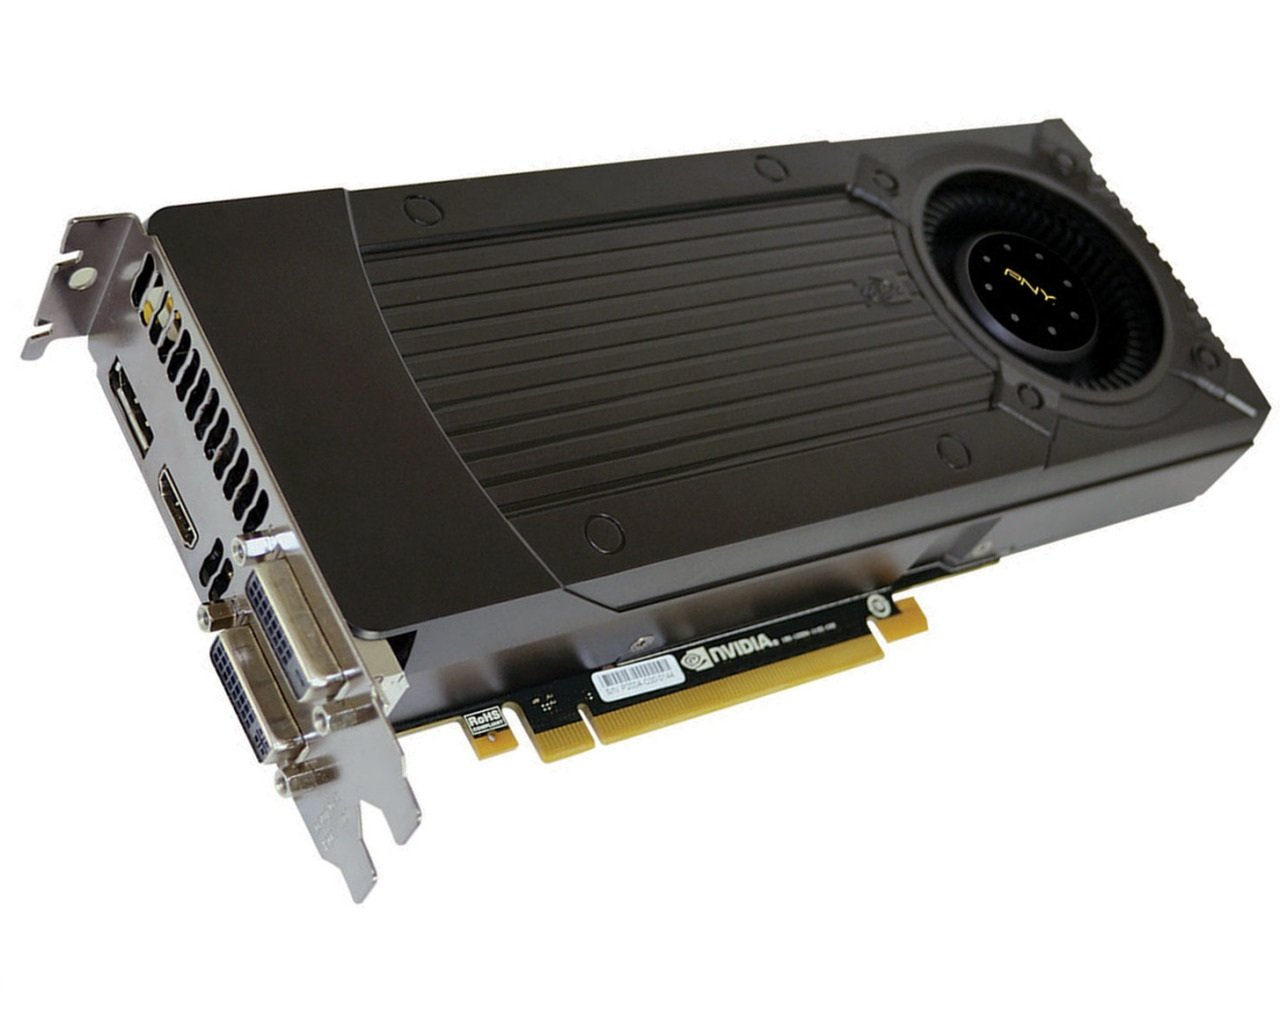 Amazon.com: PNY GeForce GTX 660 Ti Tarjetas gráficas ...